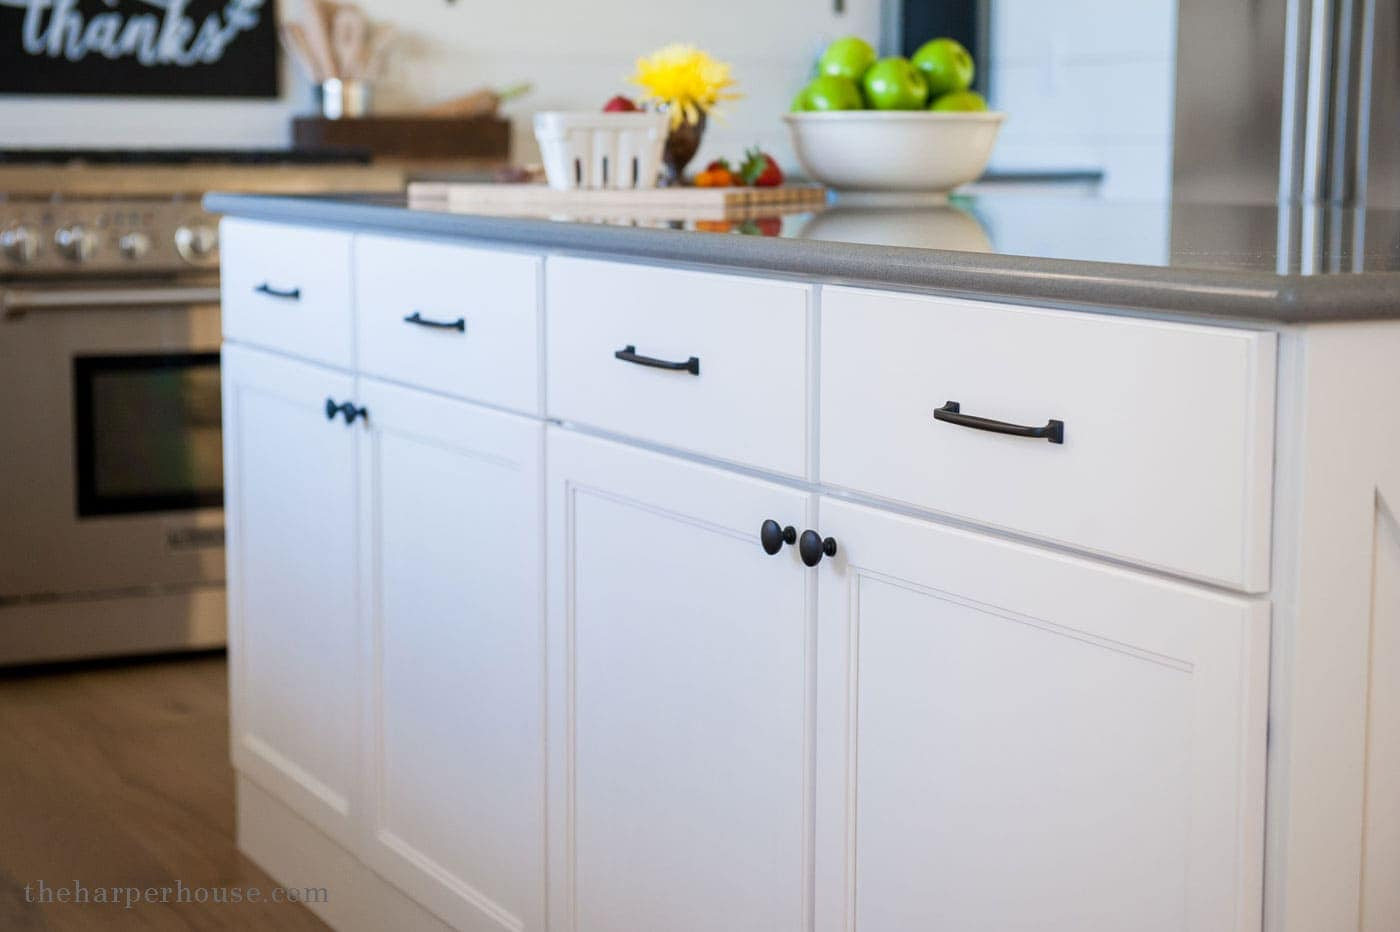 Handles And Knobs For Kitchen Cabinets Kitchen Hardware 27 Budget Friendly Options The Harper